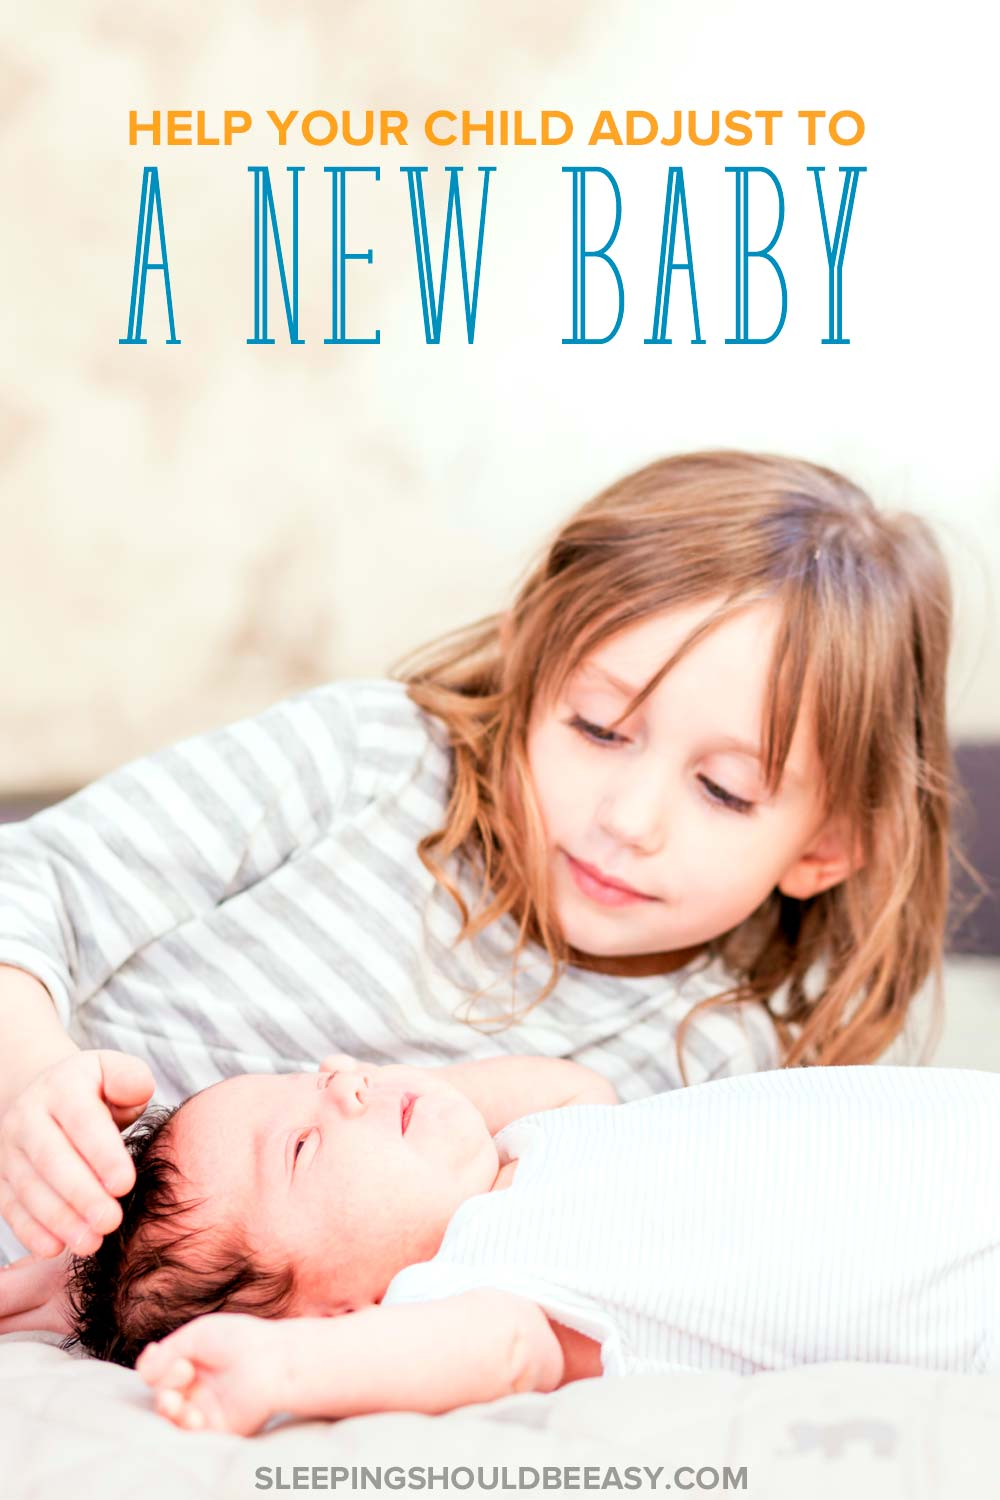 Anxious about how your child will take to a new sibling? Introducing a new baby can be tough. Here are tips on helping your child adjust to a new baby.